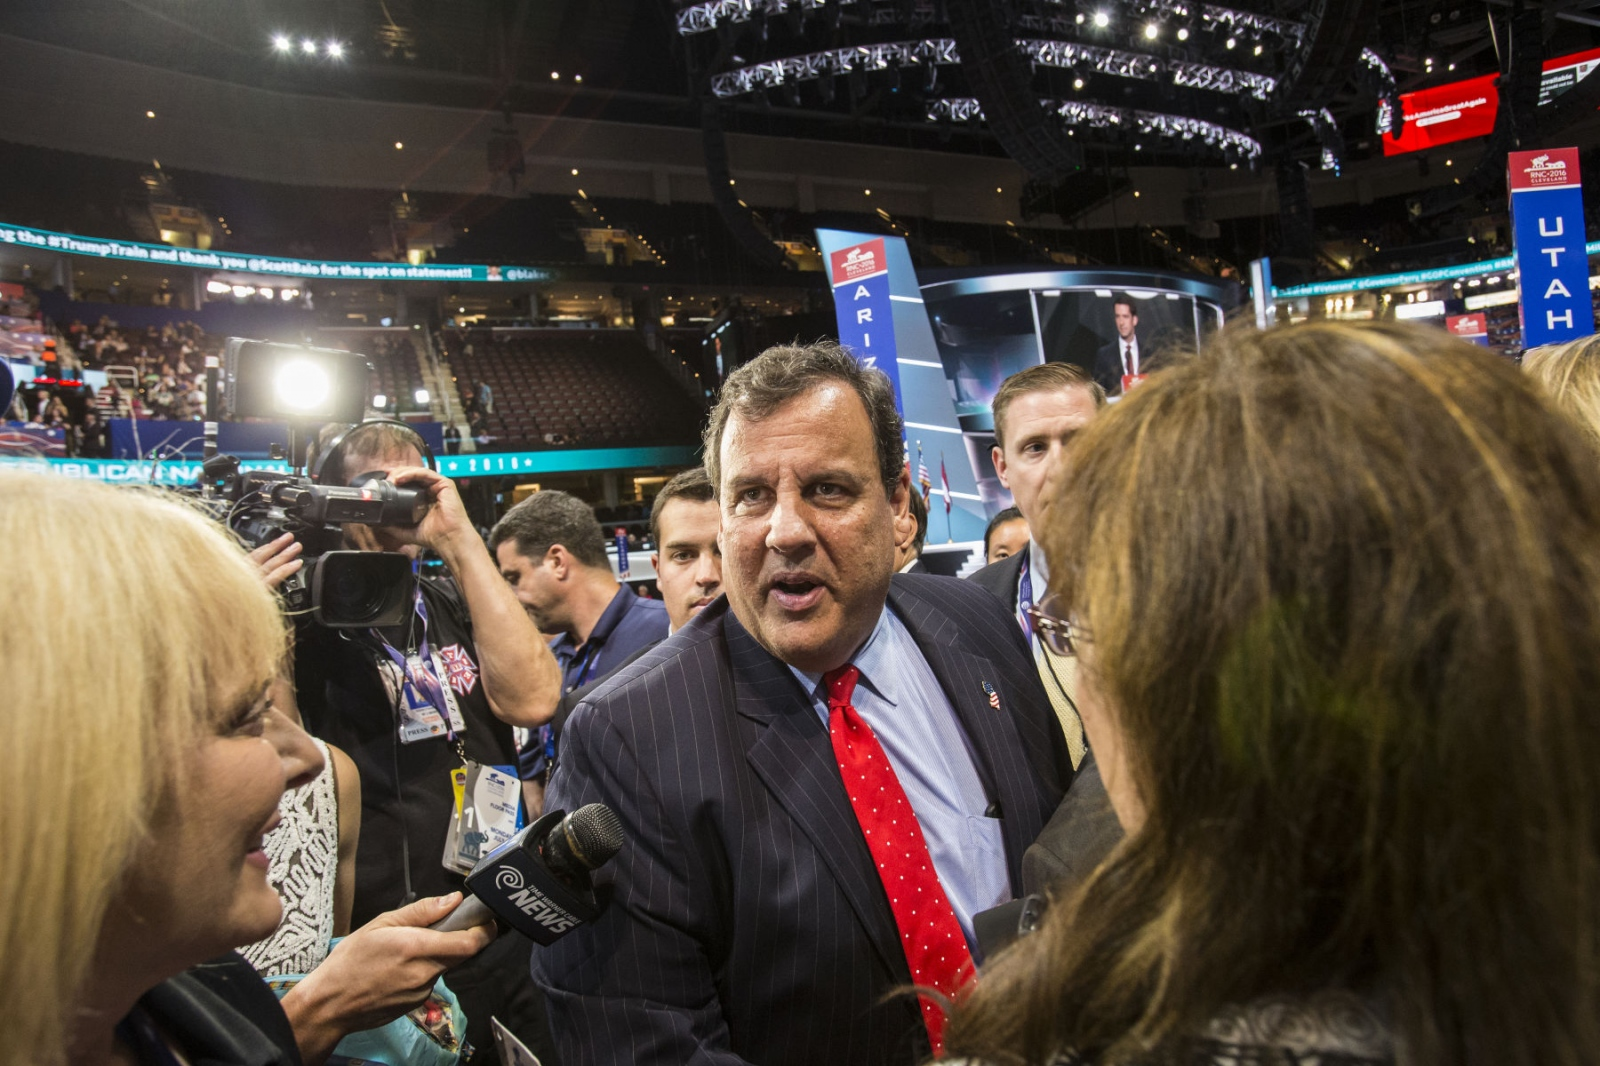 Governor Chris Christie of New Jersey speaks to media after his speech at the Republican National Convention in Cleveland, Ohio, where he endorsed Donald Trump for President of the United States. July 19, 2016 (Kevin C. Downs/Cosmos)